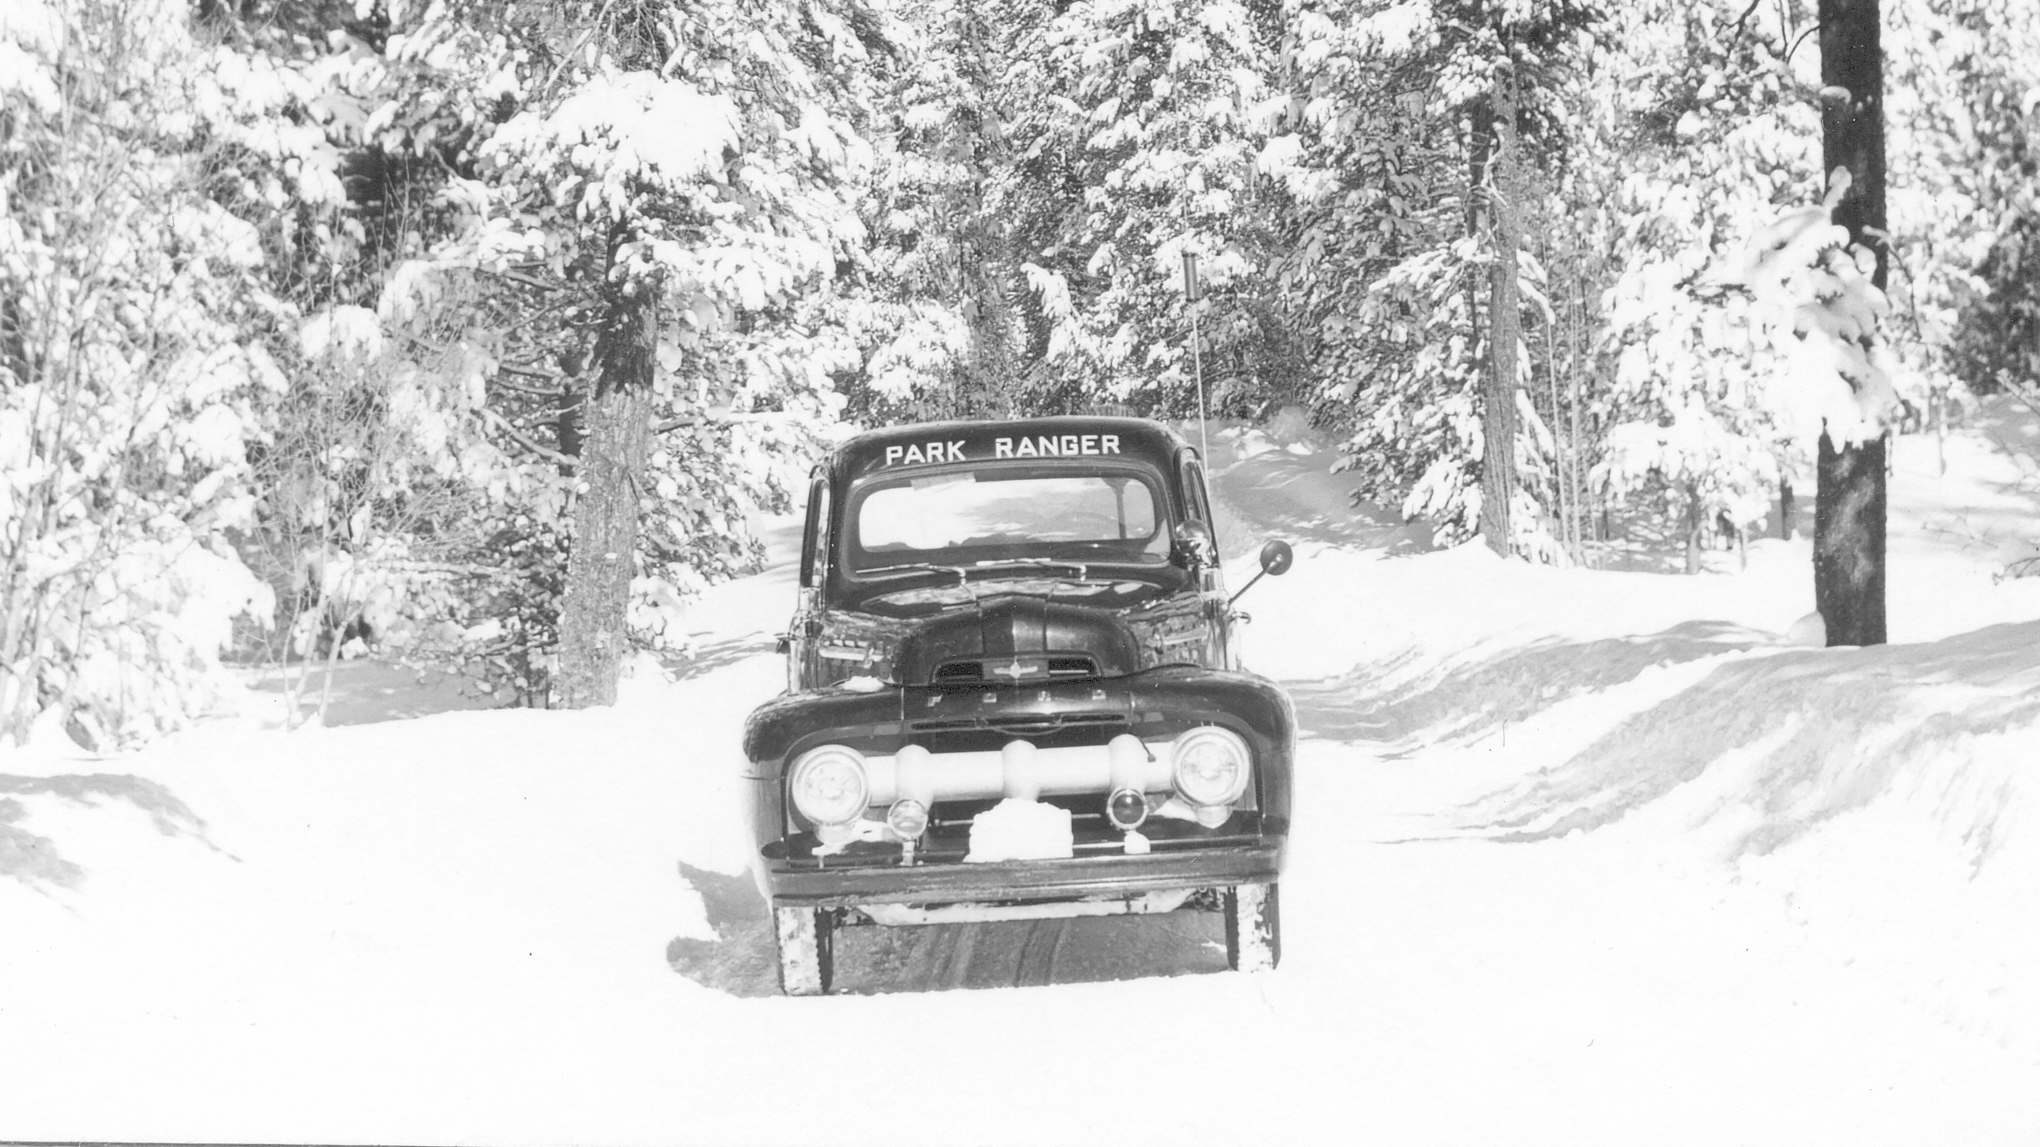 A historic photo of an old car on a snow-covered road lined by conifers